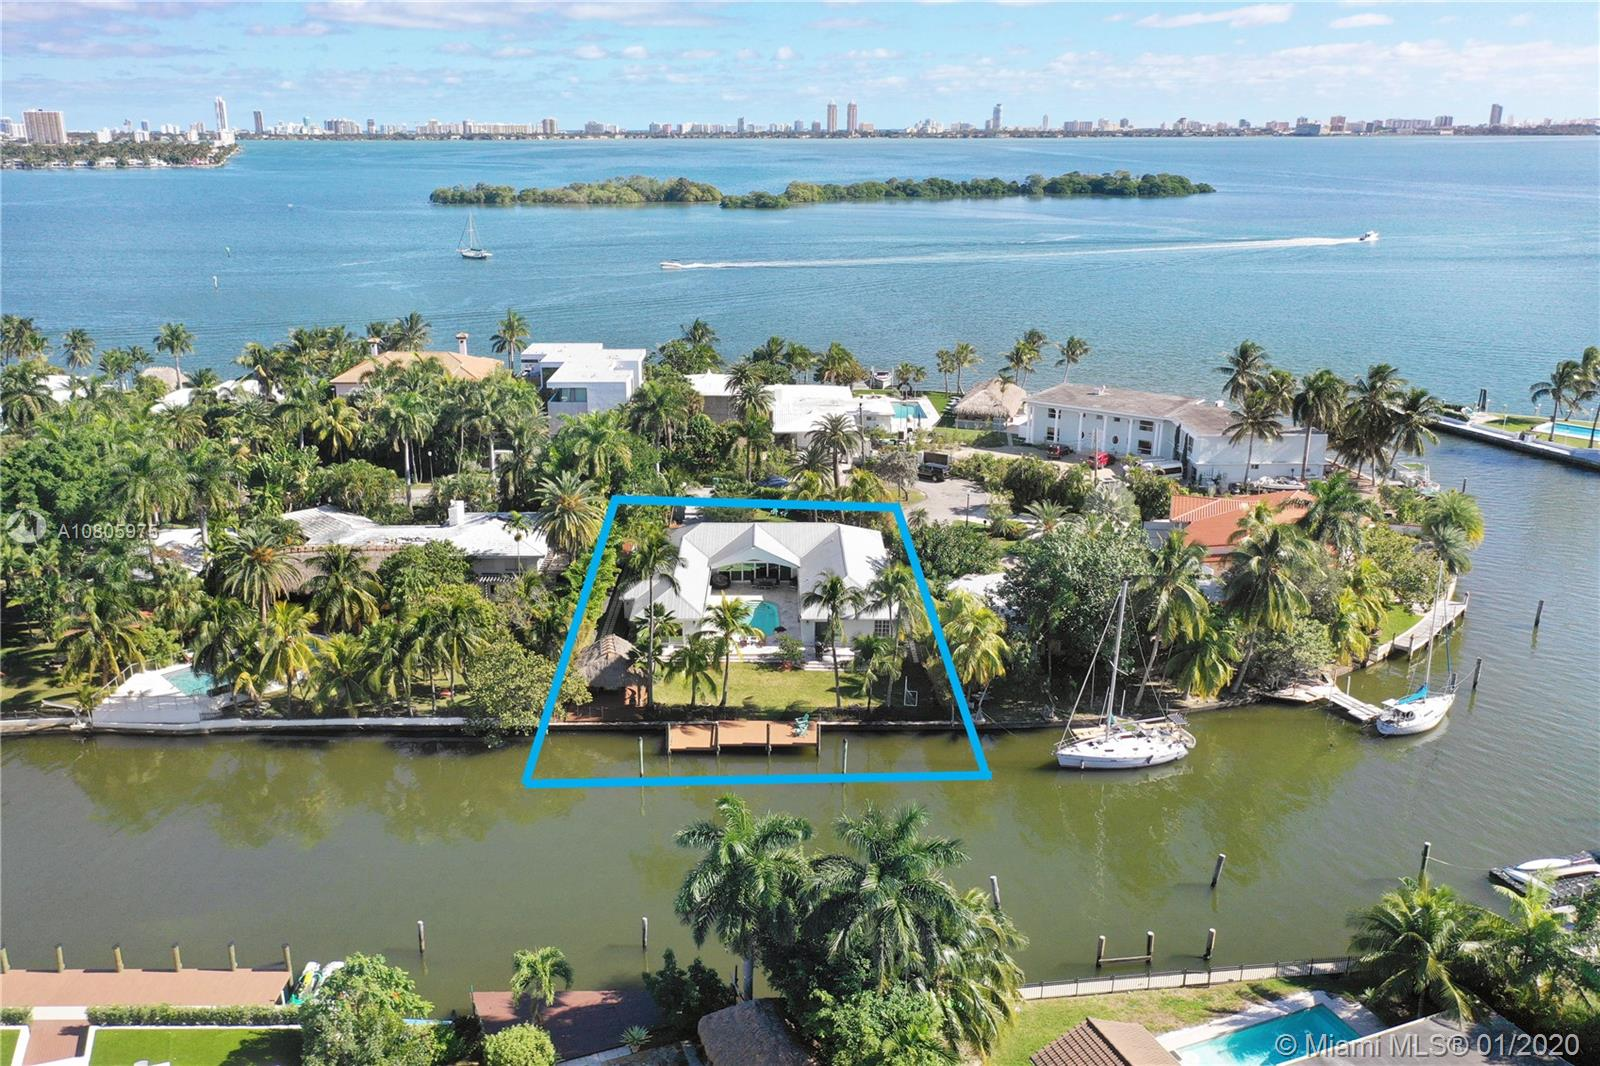 """""""Belle Meade Island""""  103' of deep Waterfront dockage. Only 3 Lots of the Wide Bay !!! Oversized 1/3 Acre Lot on a Private """"Cul-De-Sac"""" Peninsula. """"OWNER WILL FINANCE W/60% DOWN"""" 5 Bdr 5Bth 4400 SF 2 Car Garage Pool. Walk into Beautiful Hi Vaulted Ceilings Classic 1960's """"A"""" Frame Construction, All HURRICANE IMPACT Glass & Metal Roof  """"Lots of Light"""" All Rooms open to Pool and Backyard. Remodeled Throughout. Large Center Island Gourmet Gas Kitchen,with Sub-Zero and Wolf Appliances. All Marble Flooring, Porcelain & Marble Baths.Huge Master Suite w/sitting room, features huge walk in closet, a Large Bath w/Floating Tub and separate Shower Stall. Tropical Landscaped Large Backyard (Lots of yard space to Entertain and play in) with Chickee Hut and Oversized Dock. 24 hour Guard gated Community."""